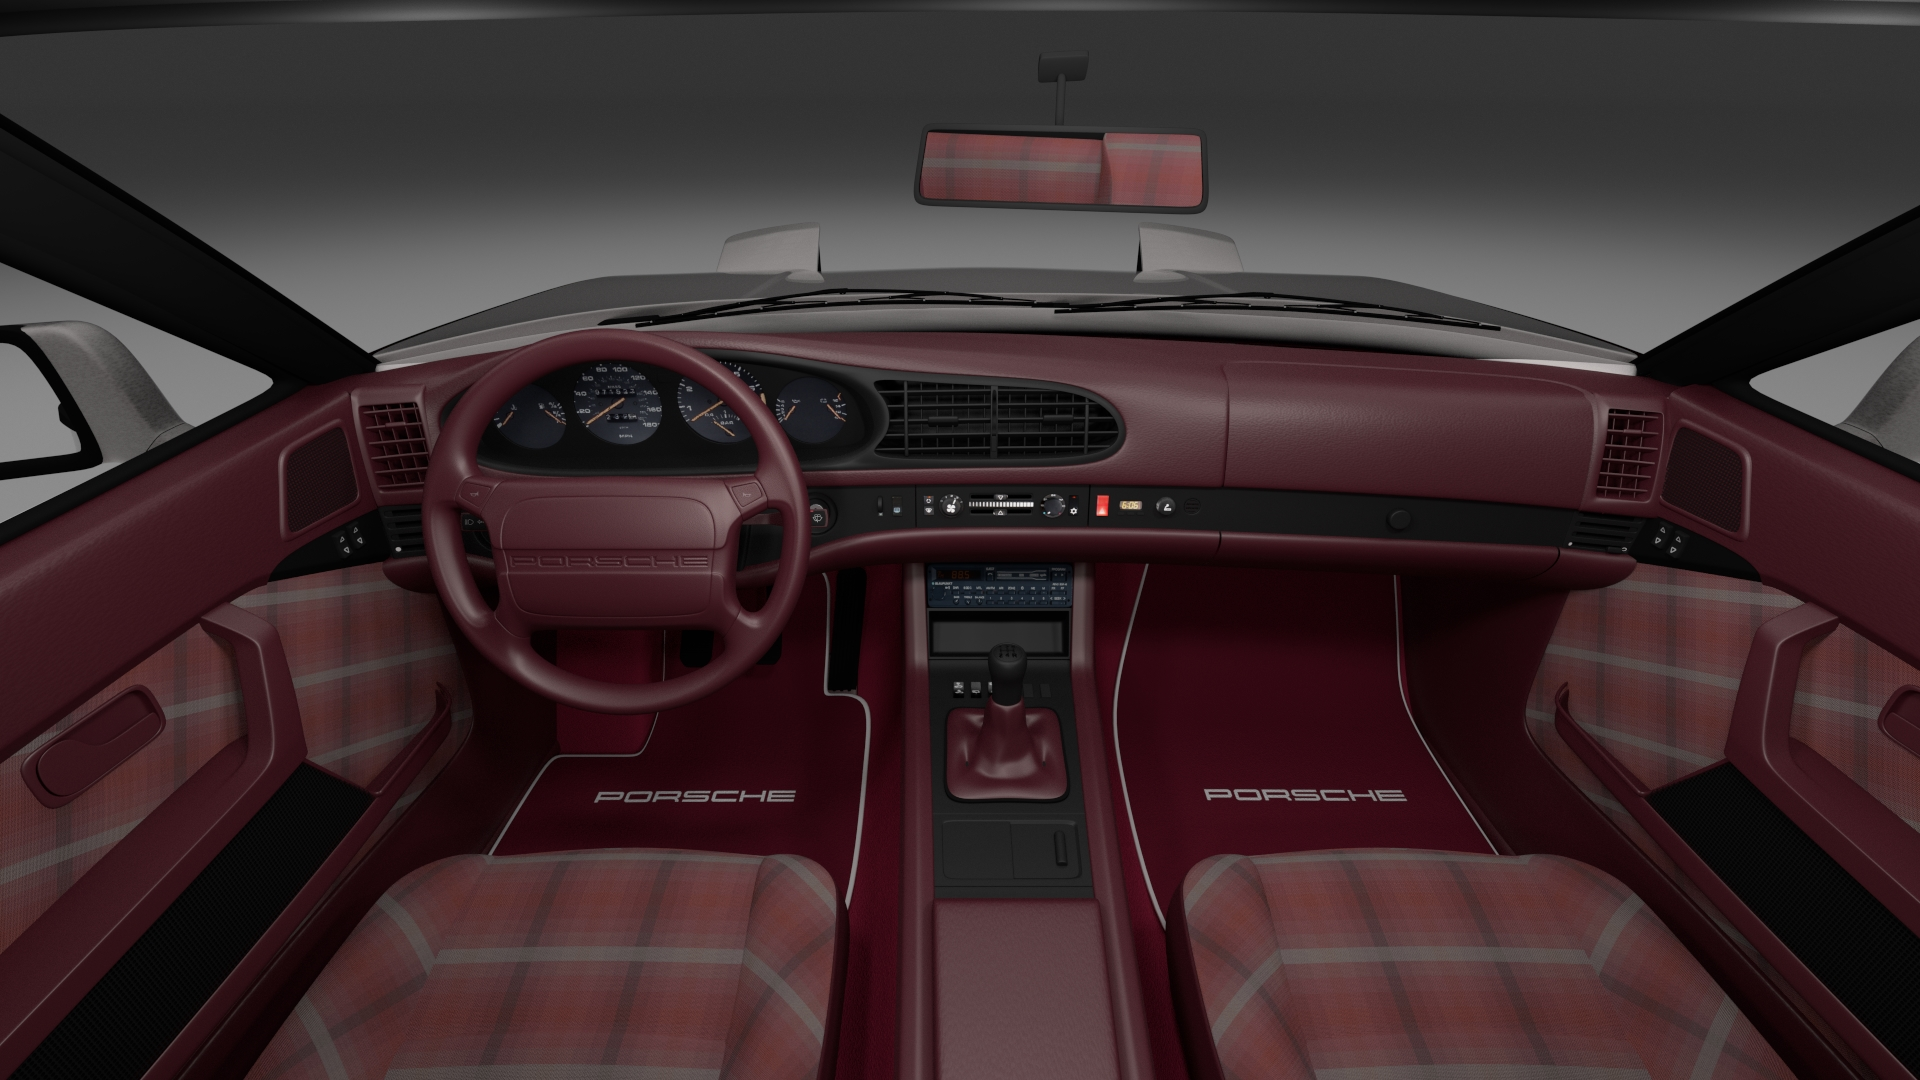 Porsche 944 turbo s with interior rev by dragosburian for Porsche 944 interieur